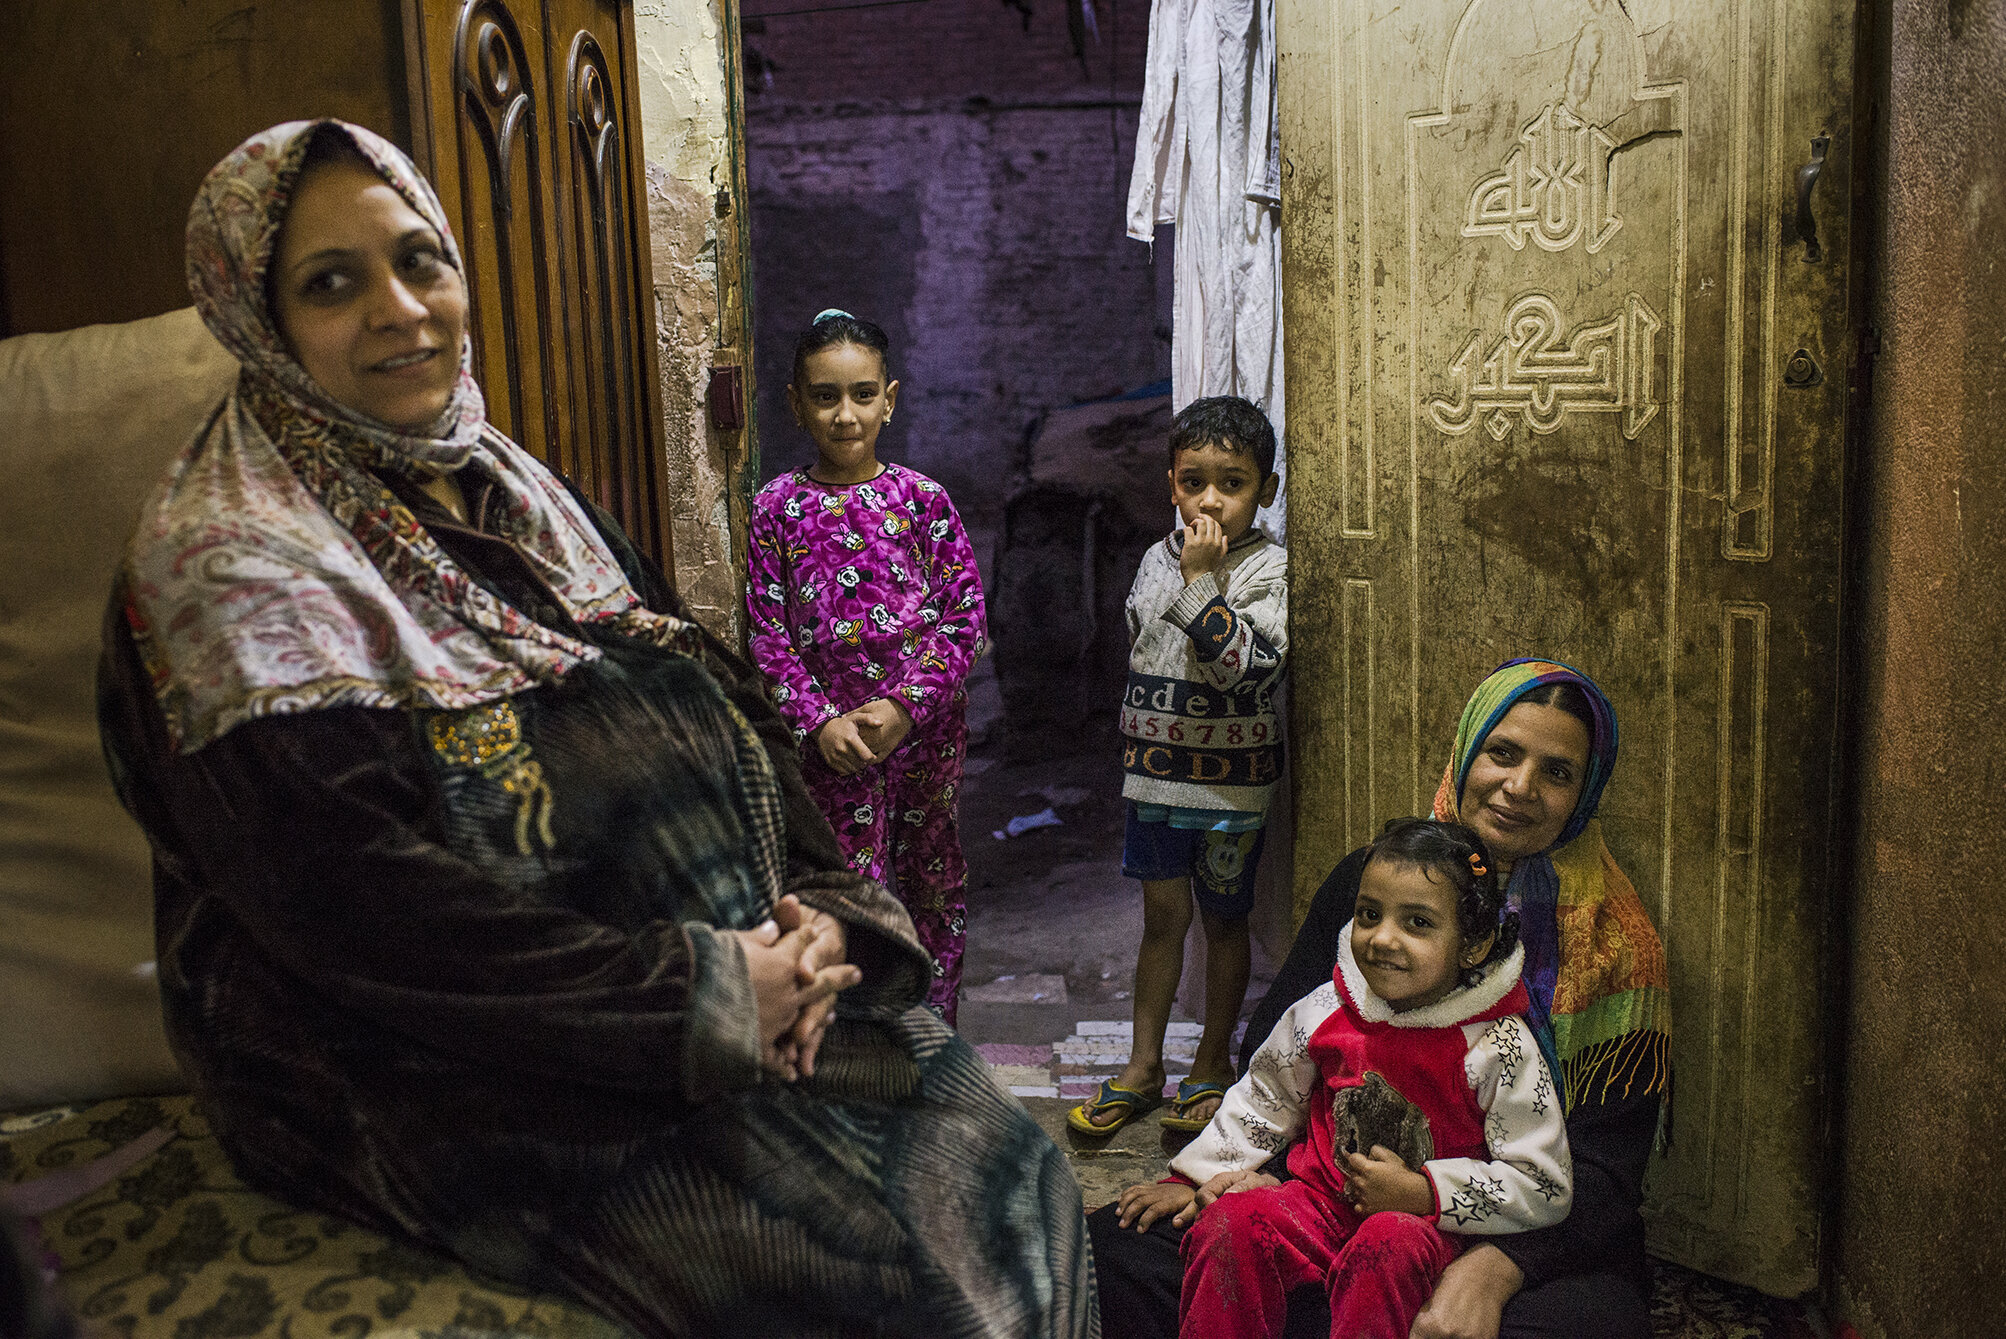 Magda (right) and Abir (left) are neighbours living in a slum area in the central Cairo. Magda works at a local gynaecological clinic and she tries to convince people around her against FGM. Abir however is planning to circumcise her 12 years old daughter. In traditional communities clitoris is perceived as source of desire and excitement; thus; it is necessary to cut it off for the girls to remain morally correct. December 2018; Cairo; Egypt